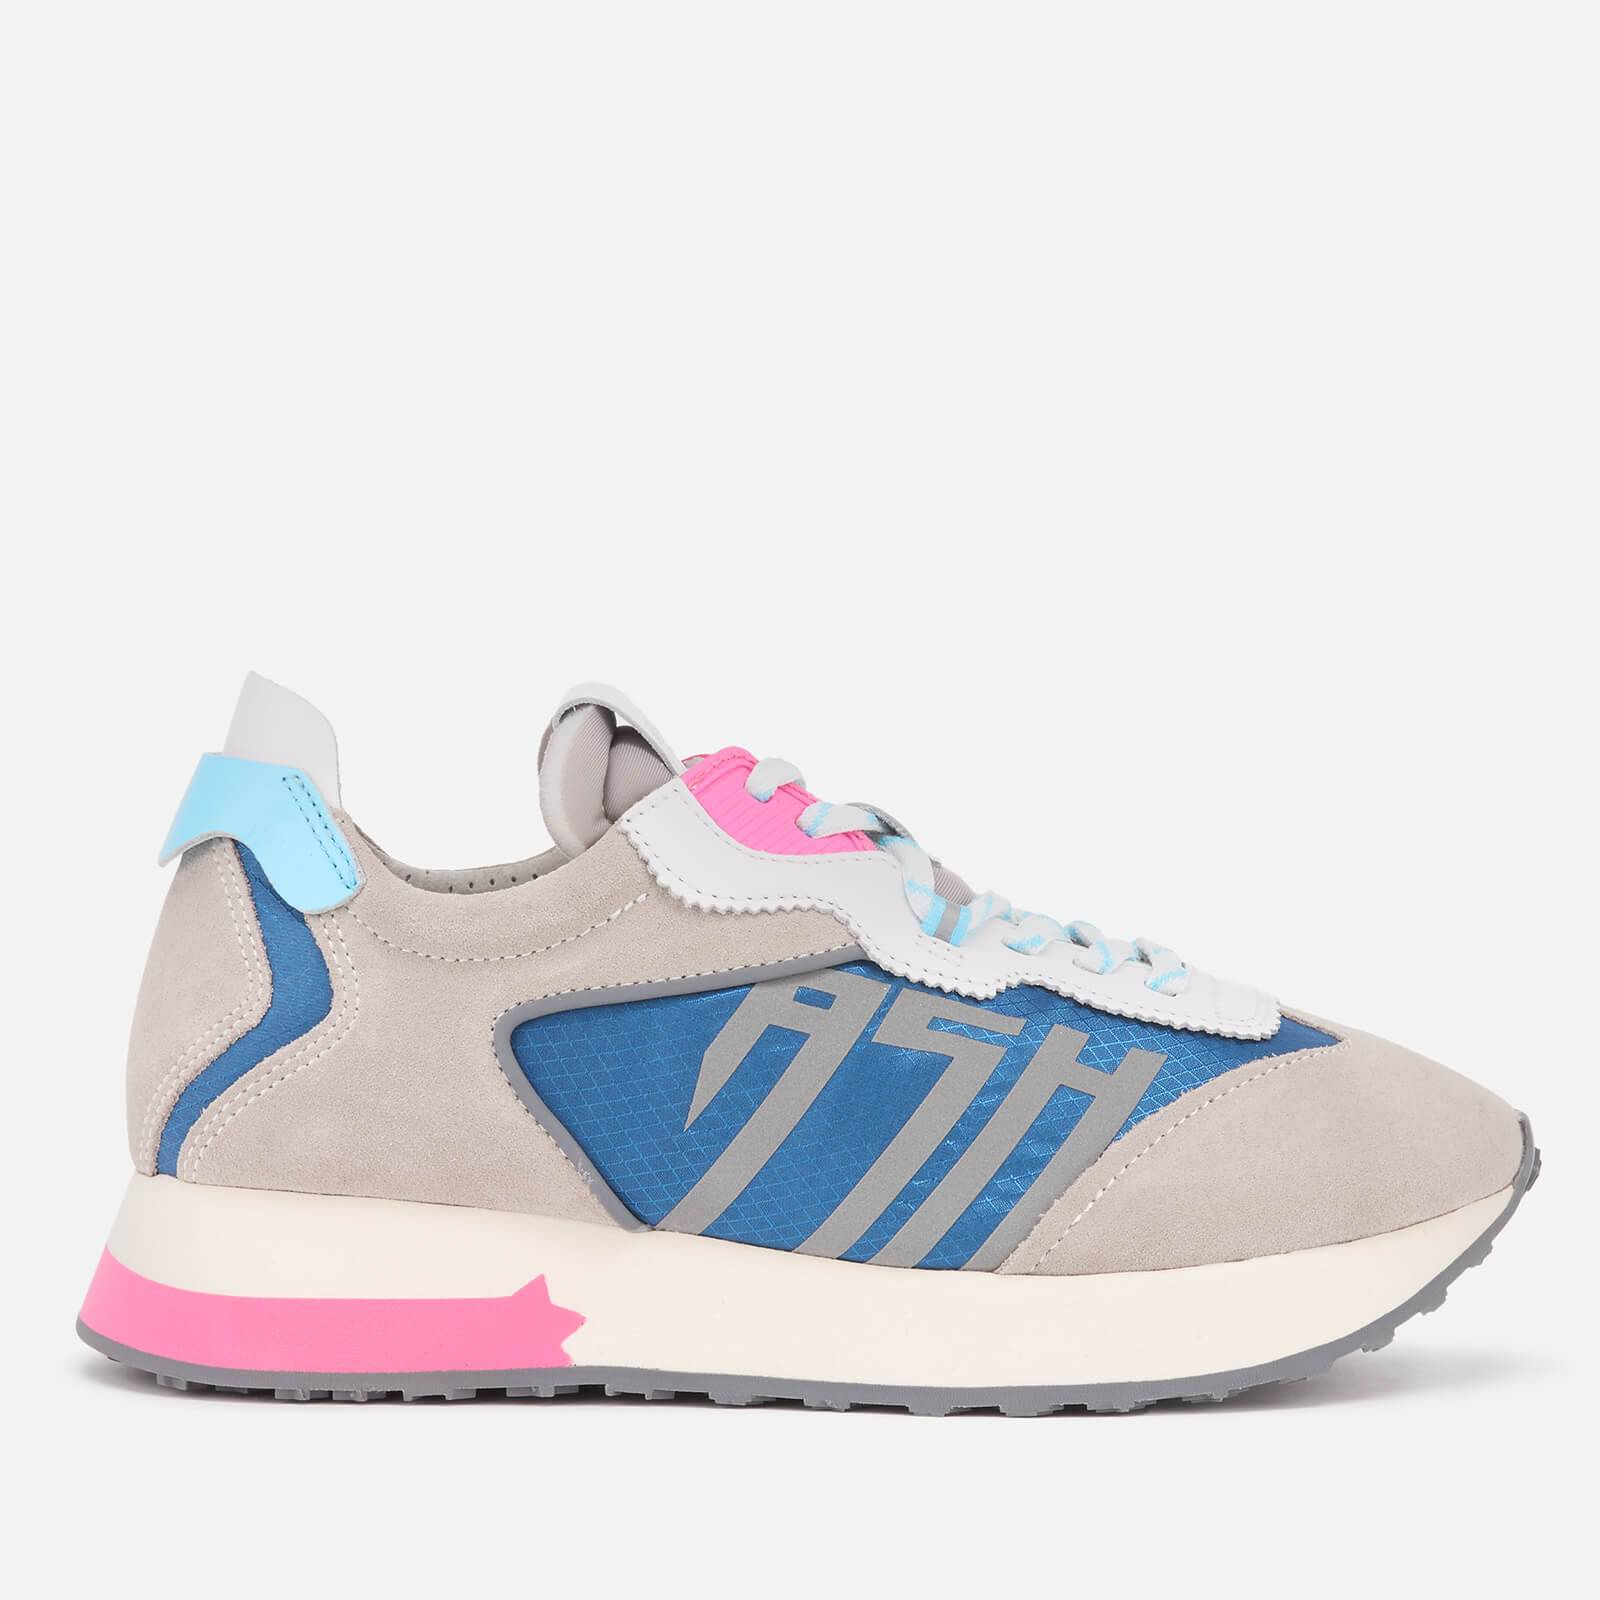 Ash Women's Tiger Running Style Trainers - Grey/White/Blue - UK 3